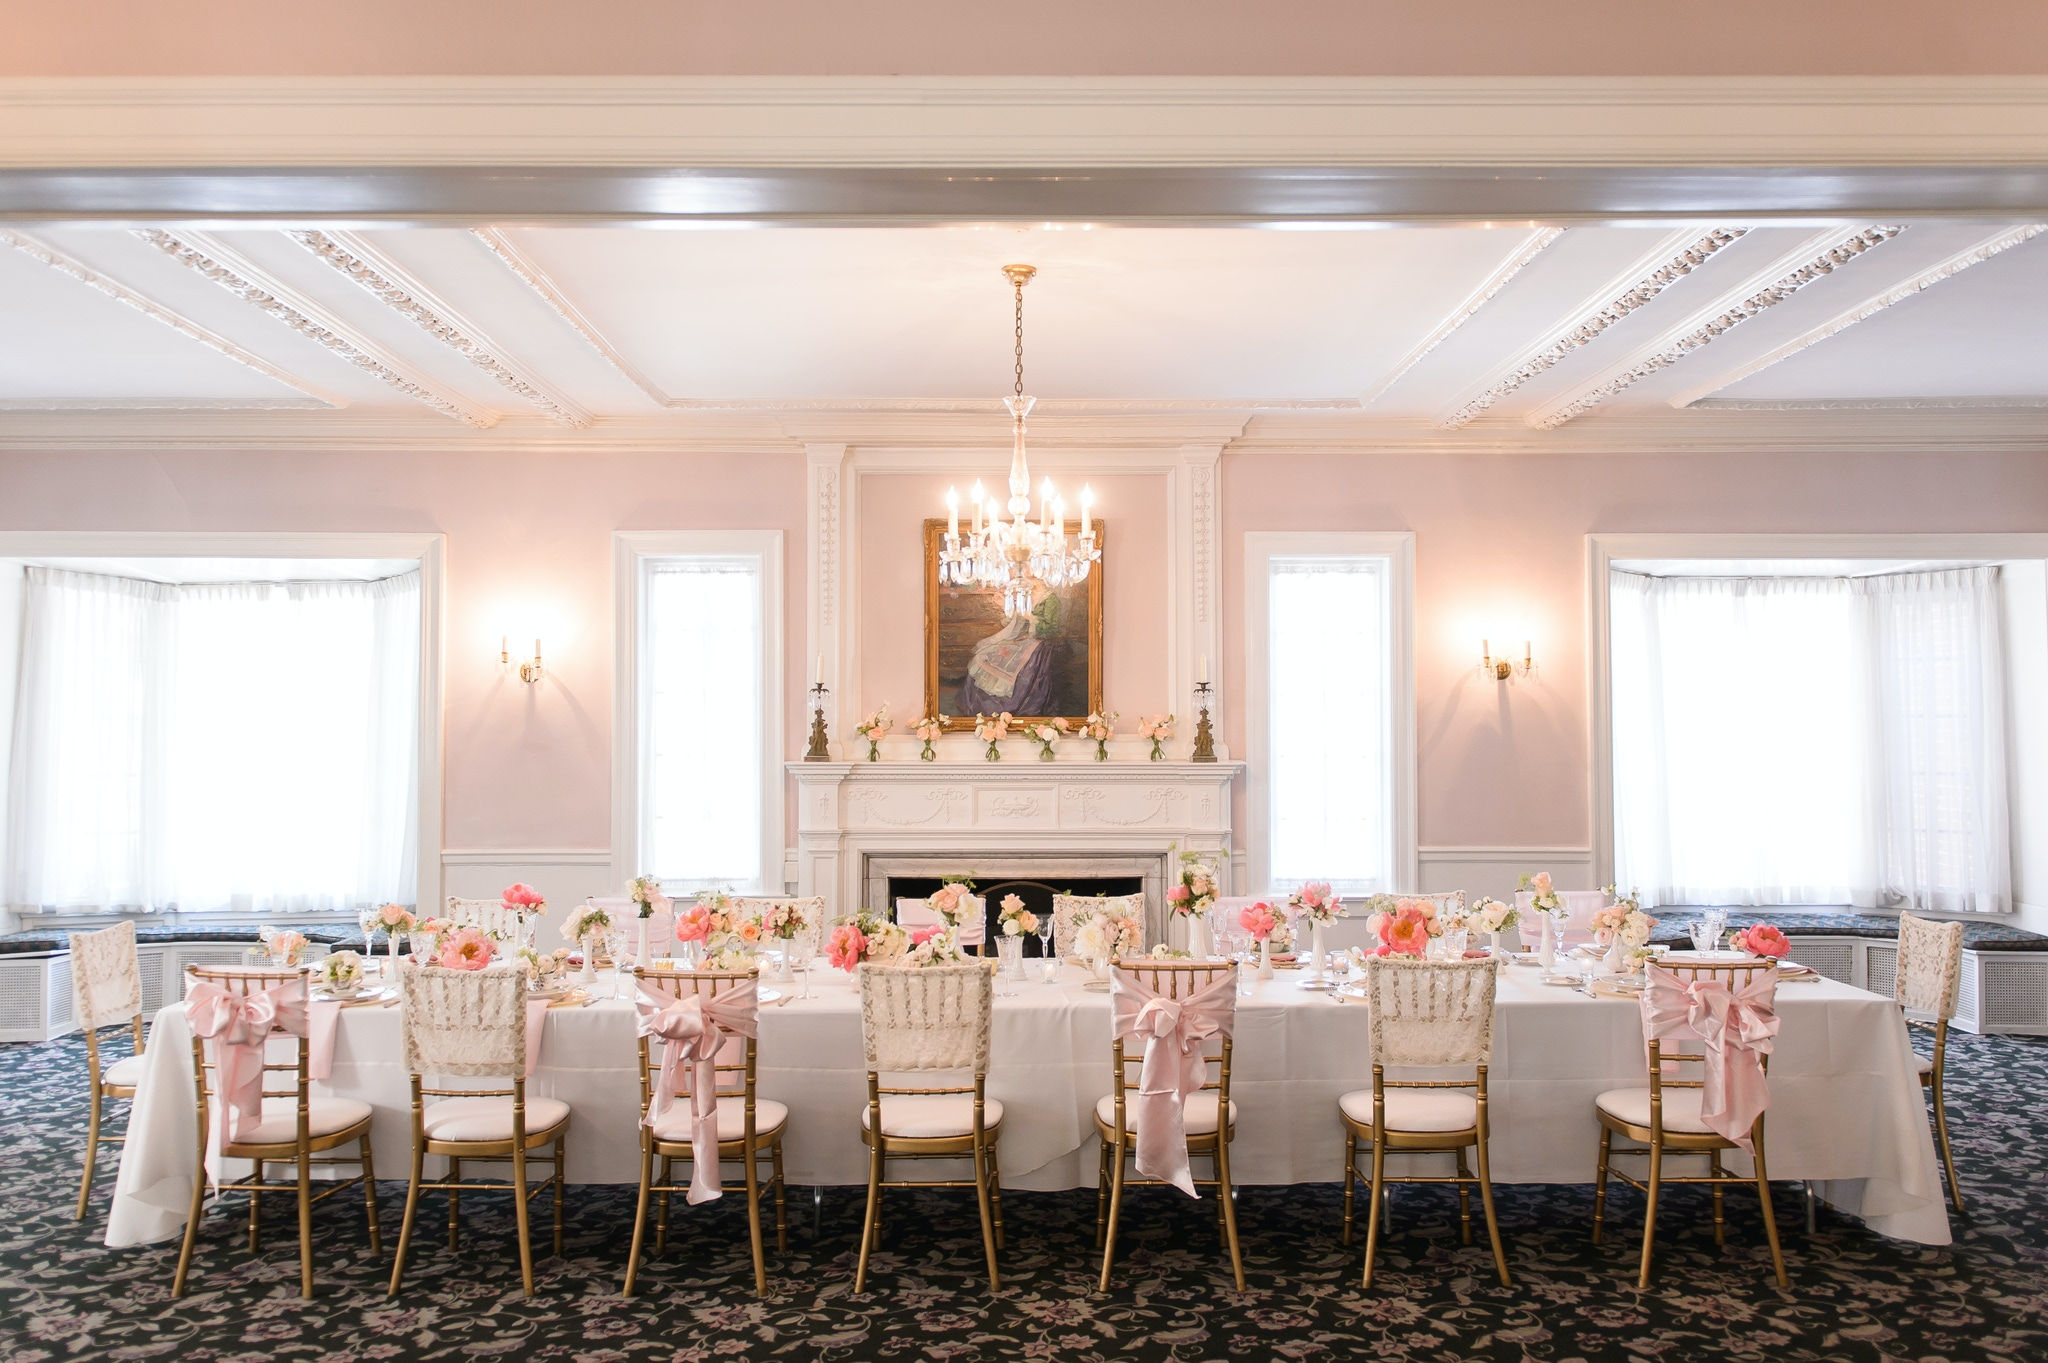 The Woman's Club of Evanston pink ballroom